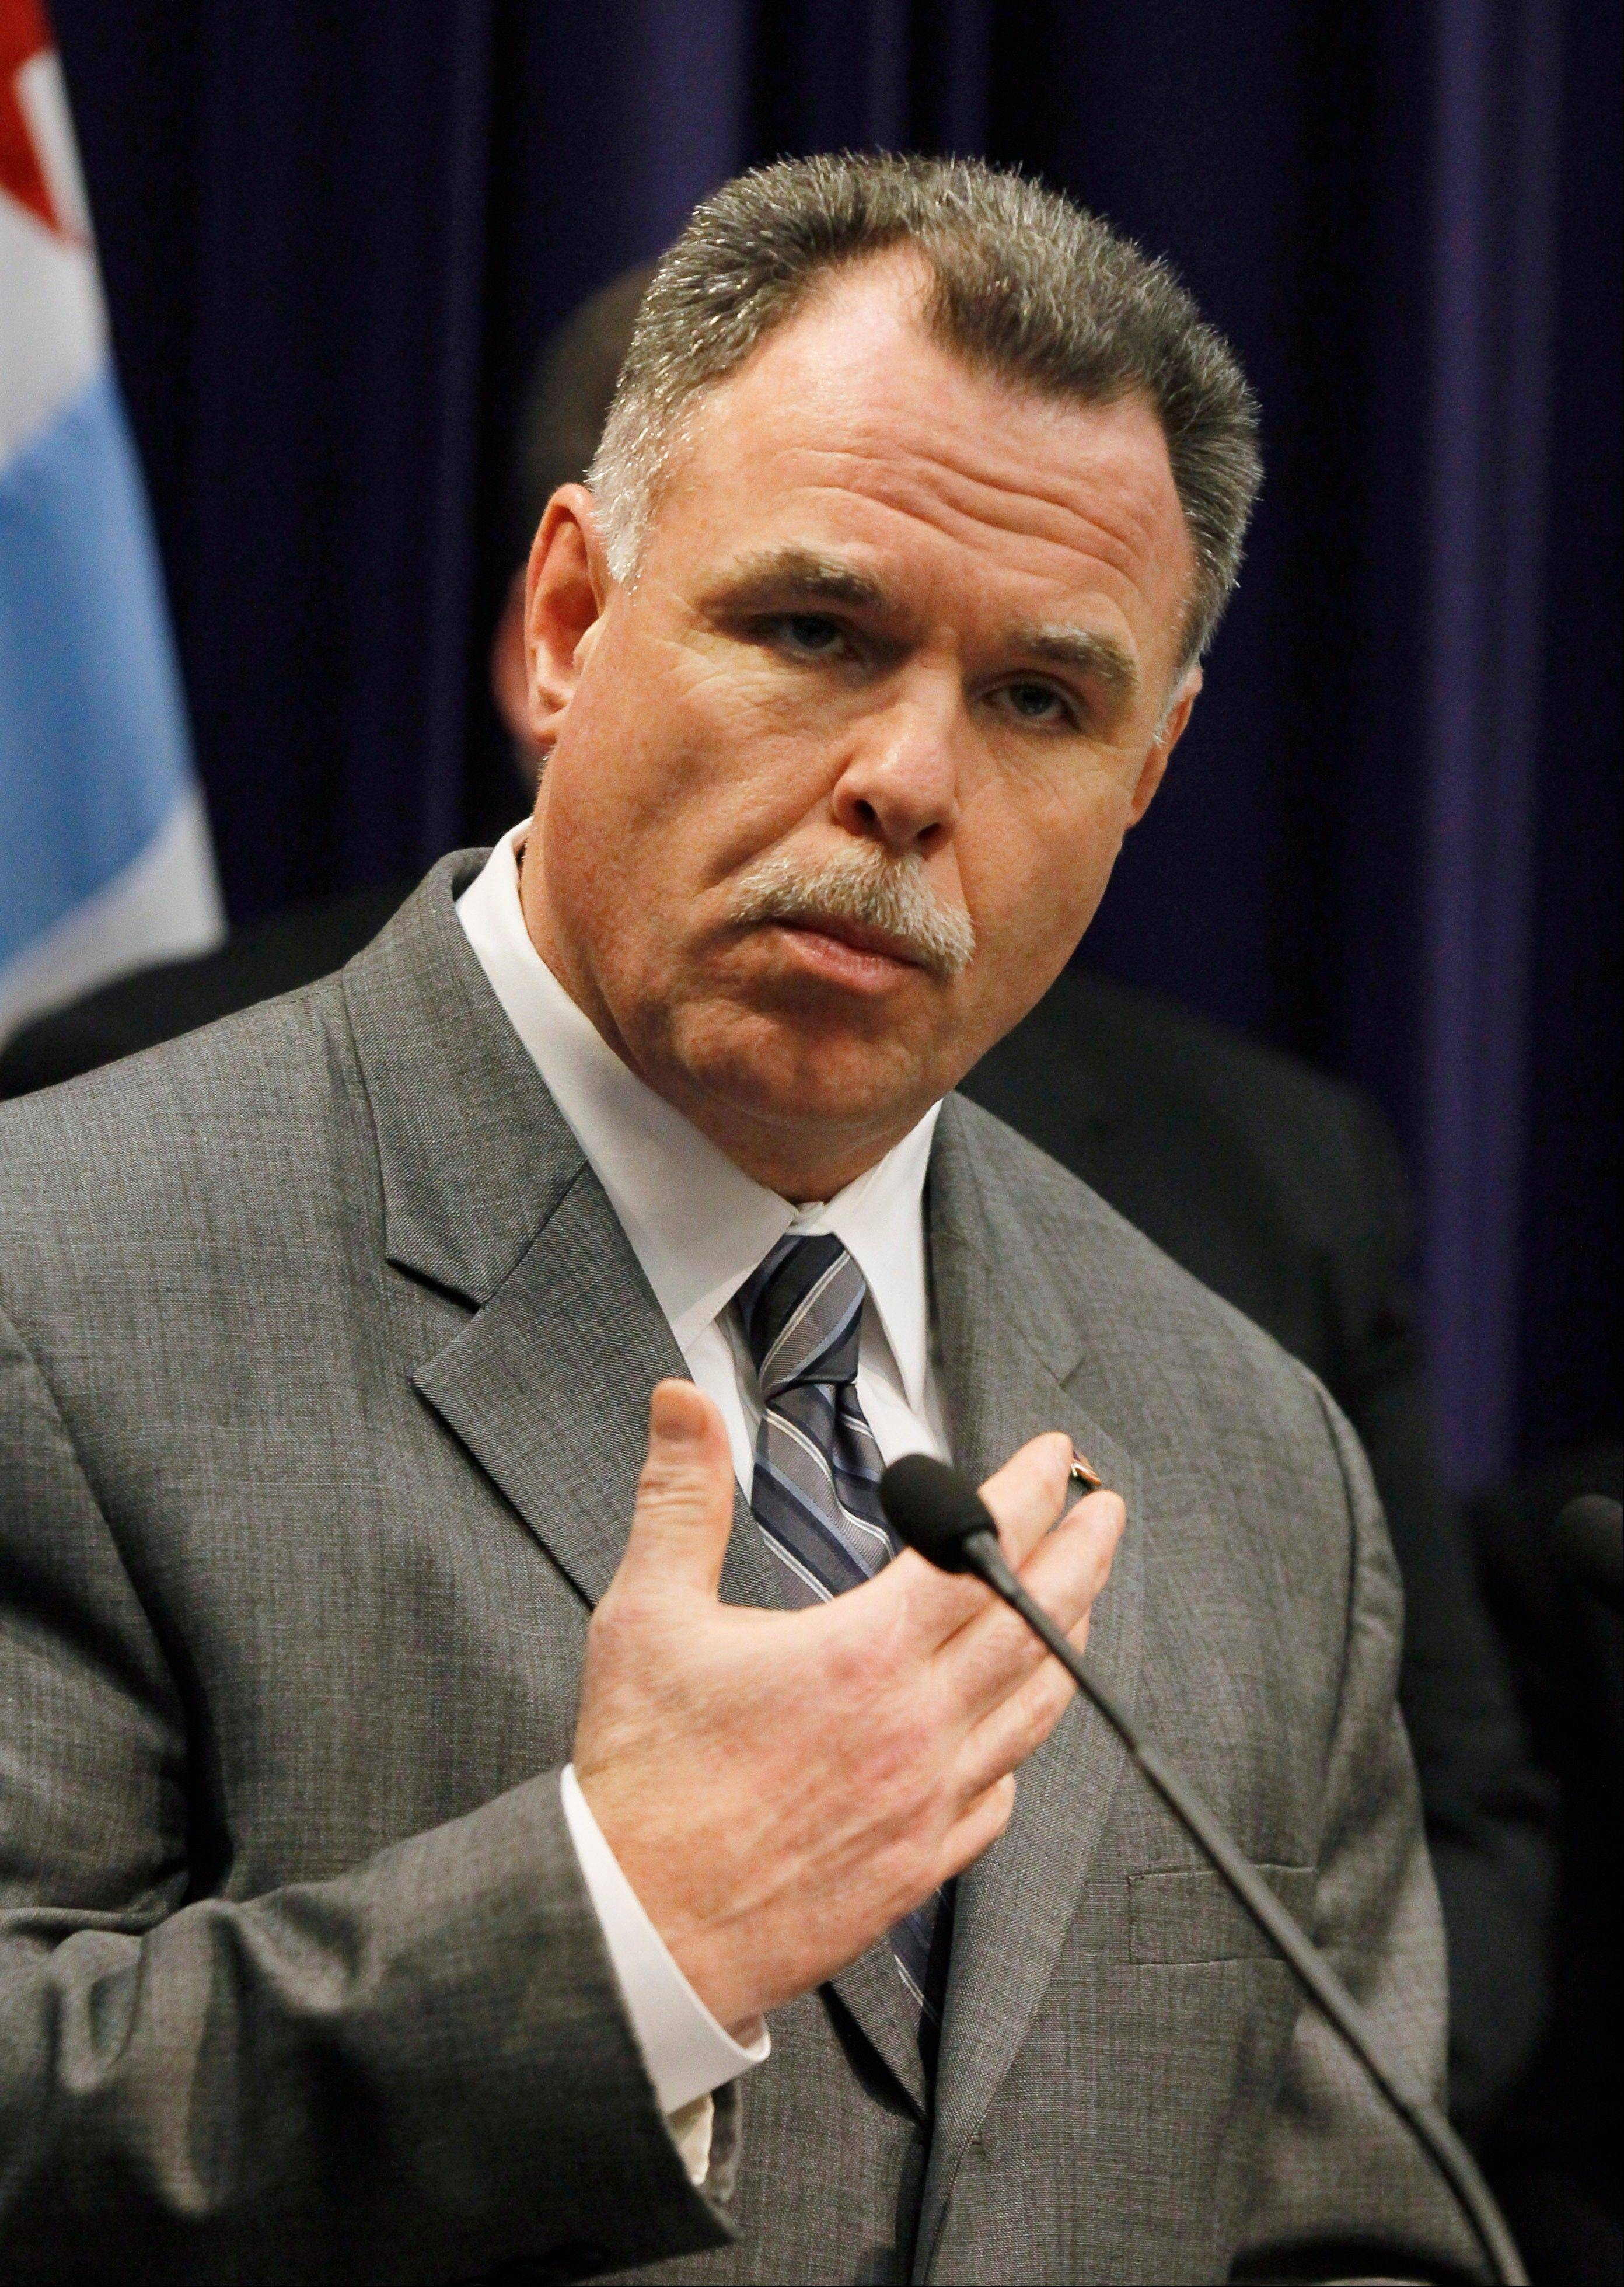 Chicago's top cop encouraged after Obama meeting